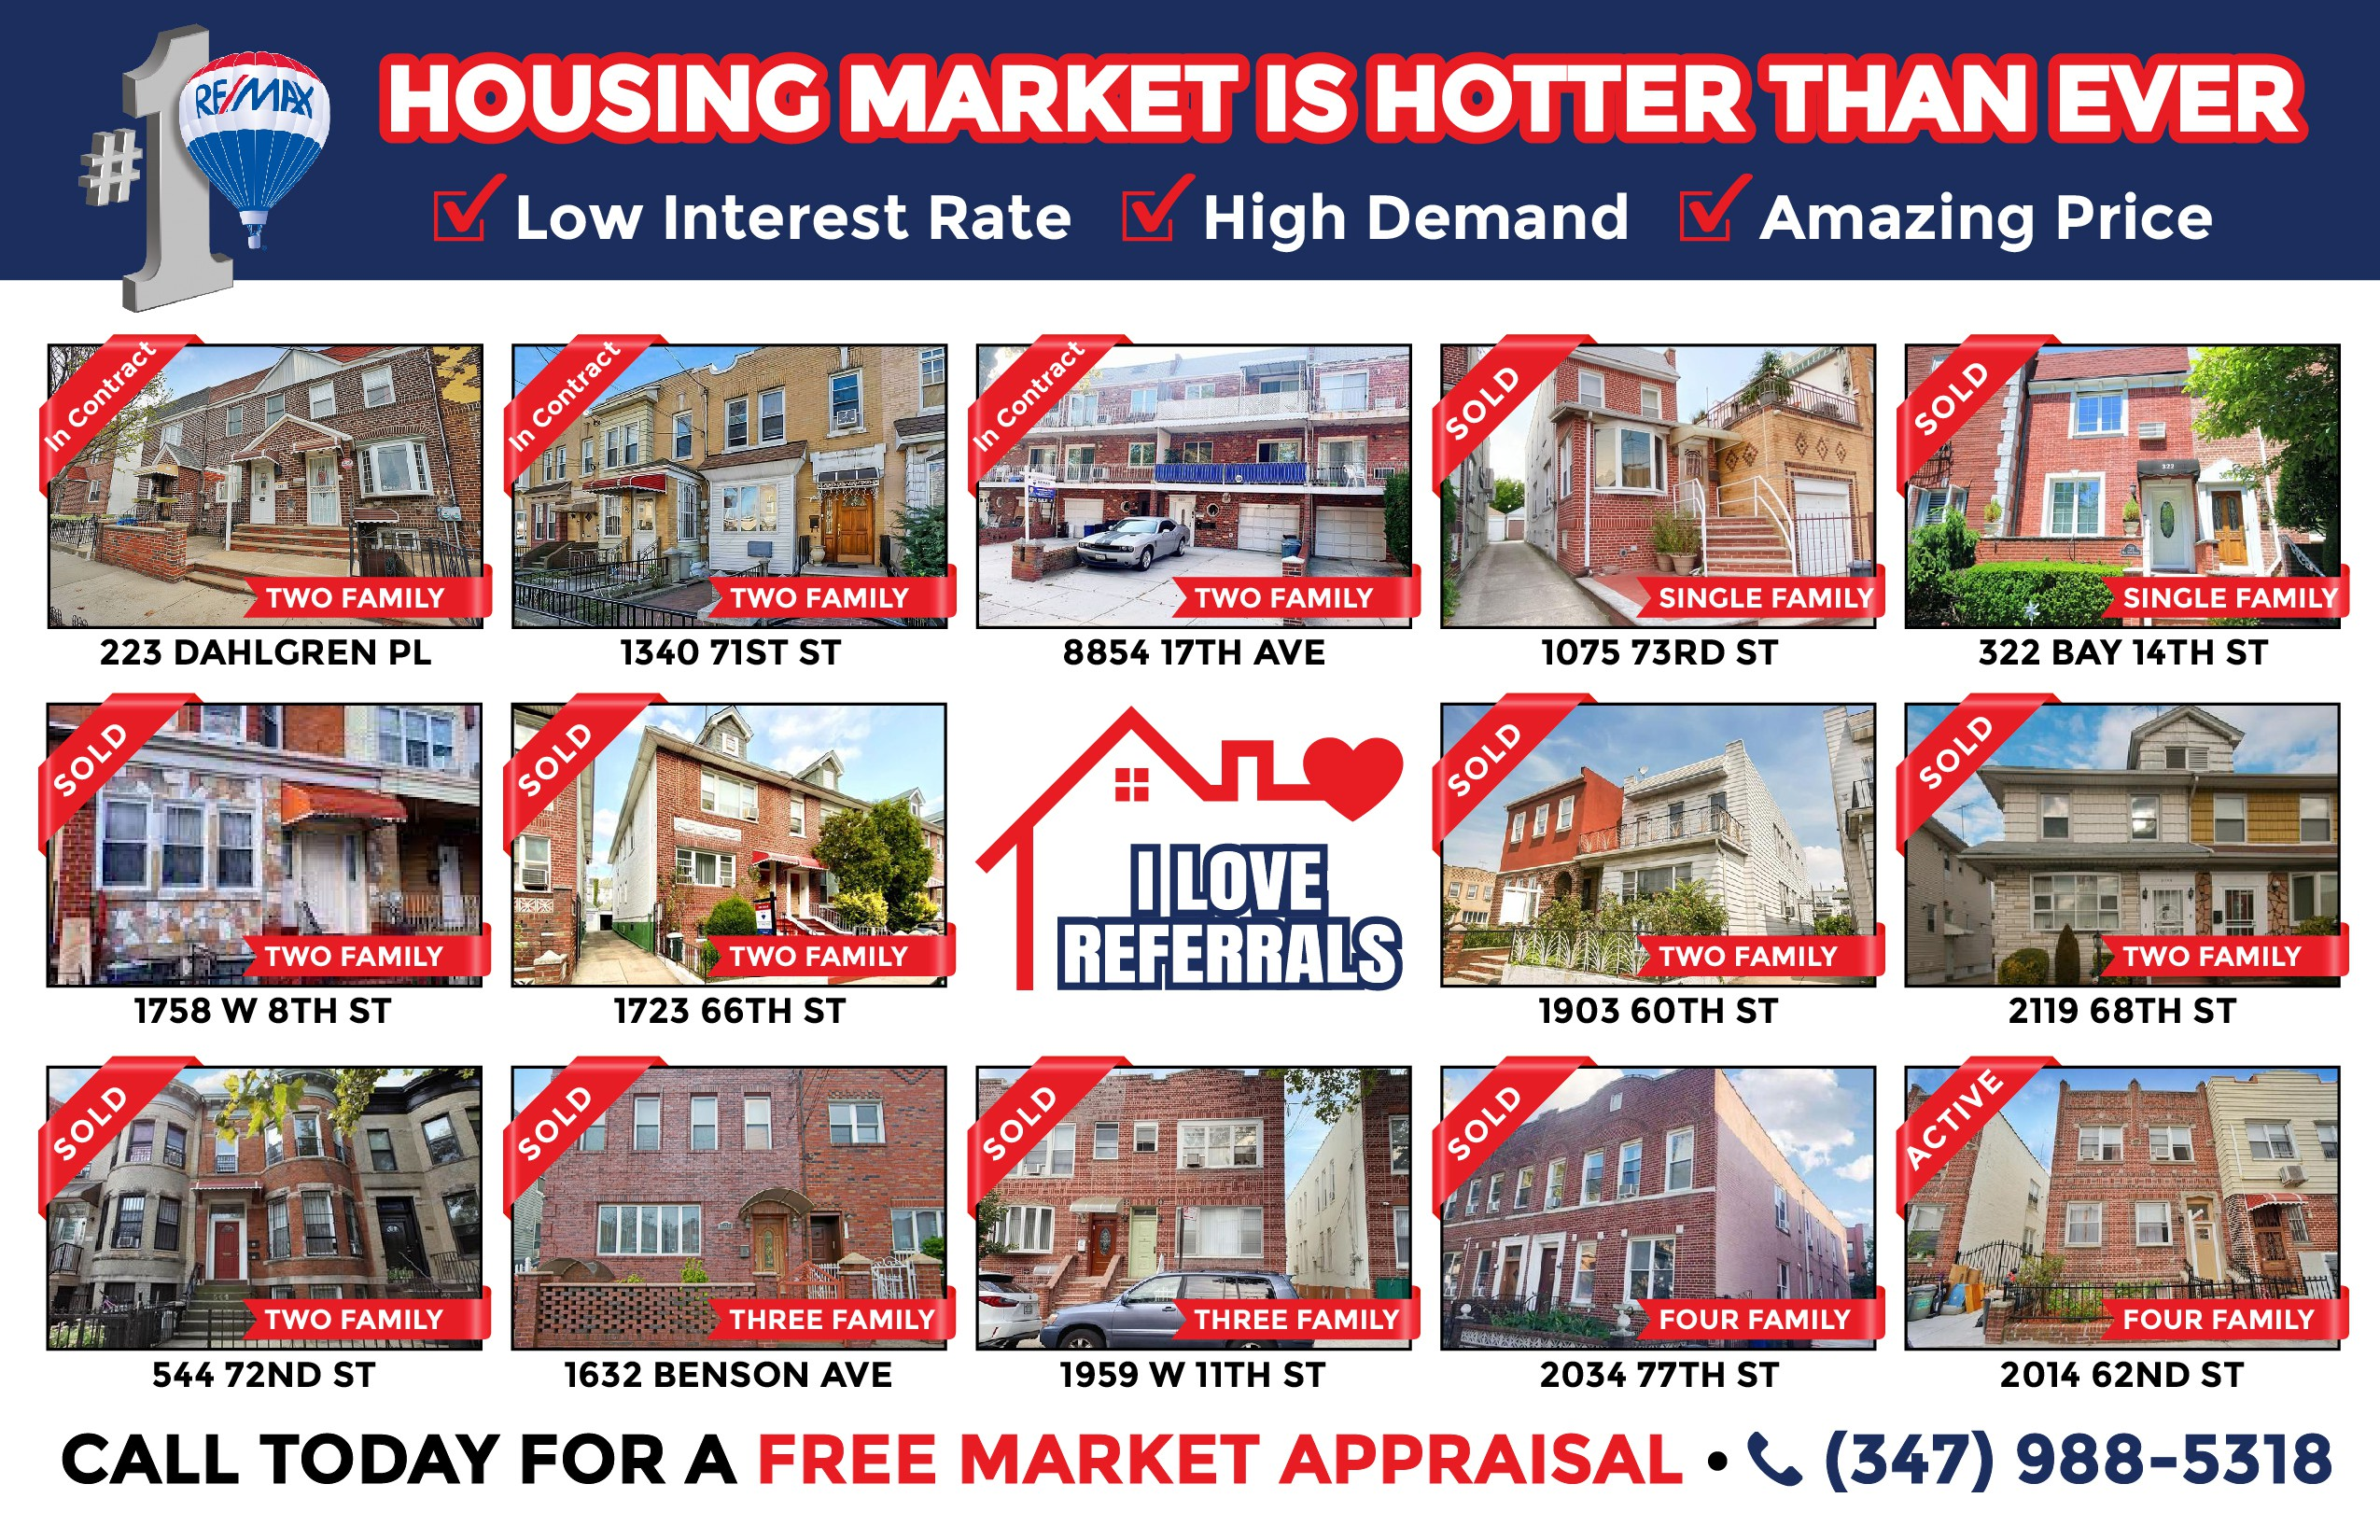 Improving Real Estate Postcard - Just Listed/Under Contract/Just SOLD